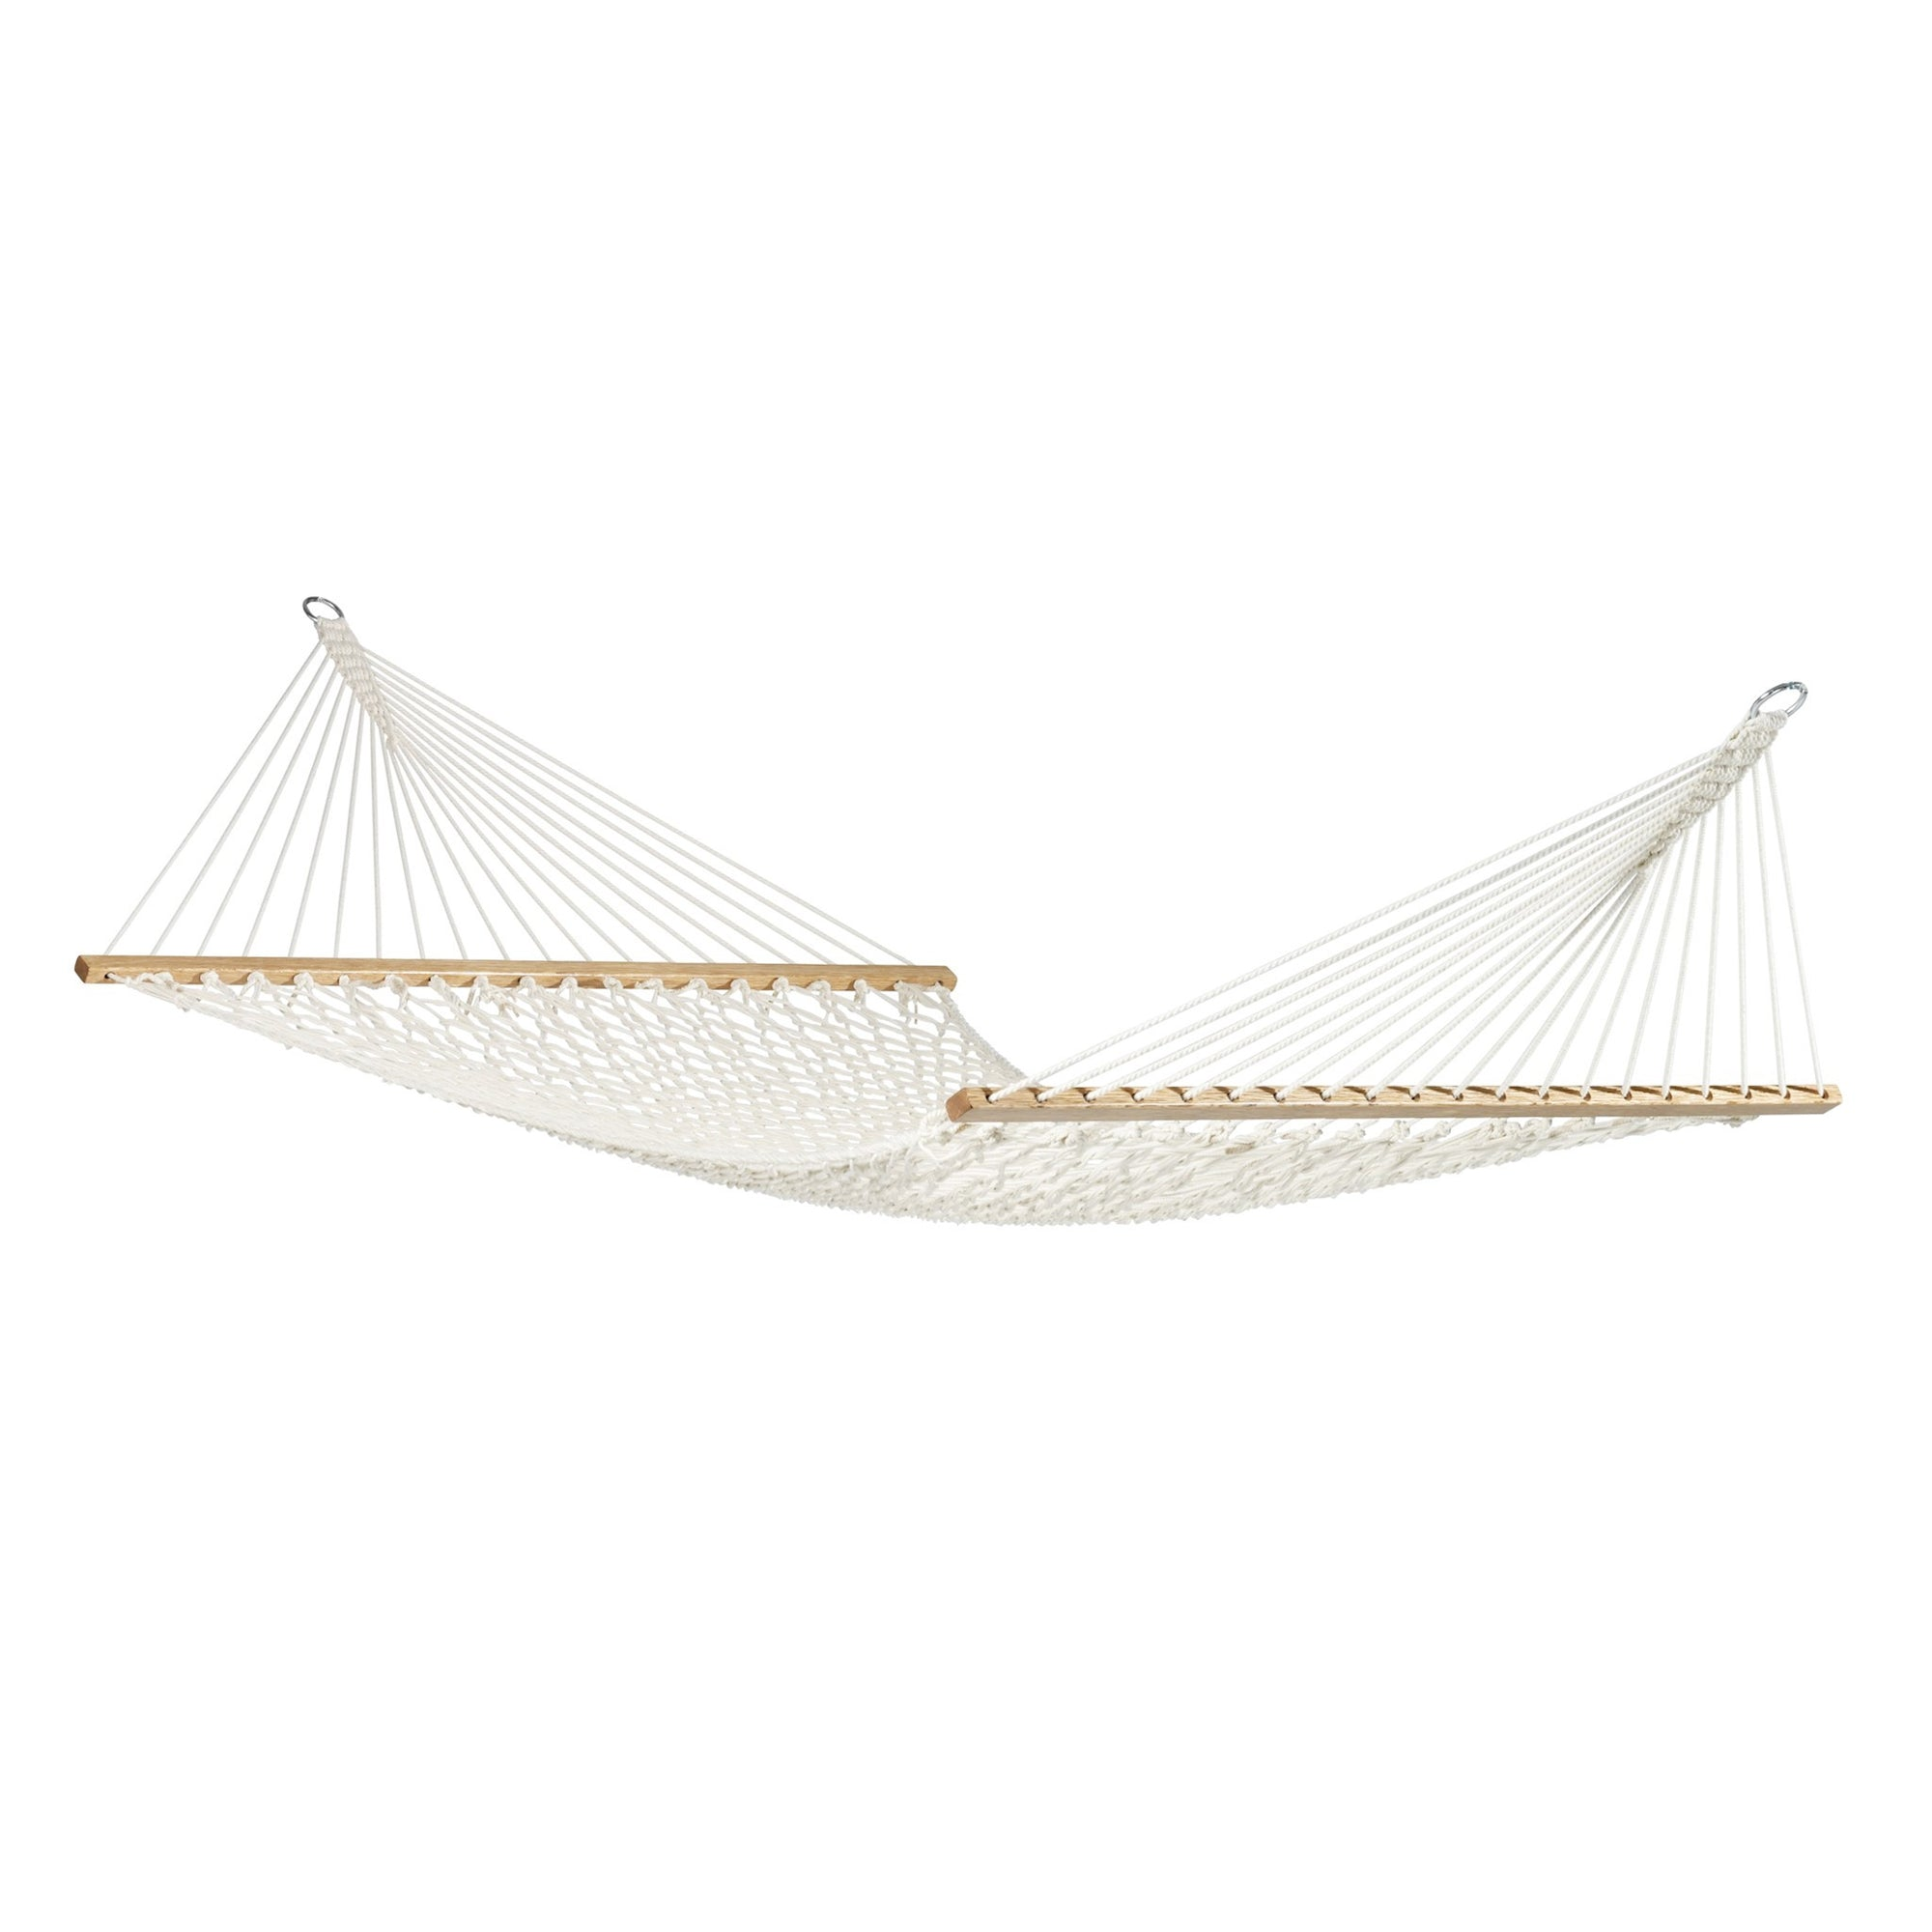 Virginia Kingsize Spreader Bar Hammock